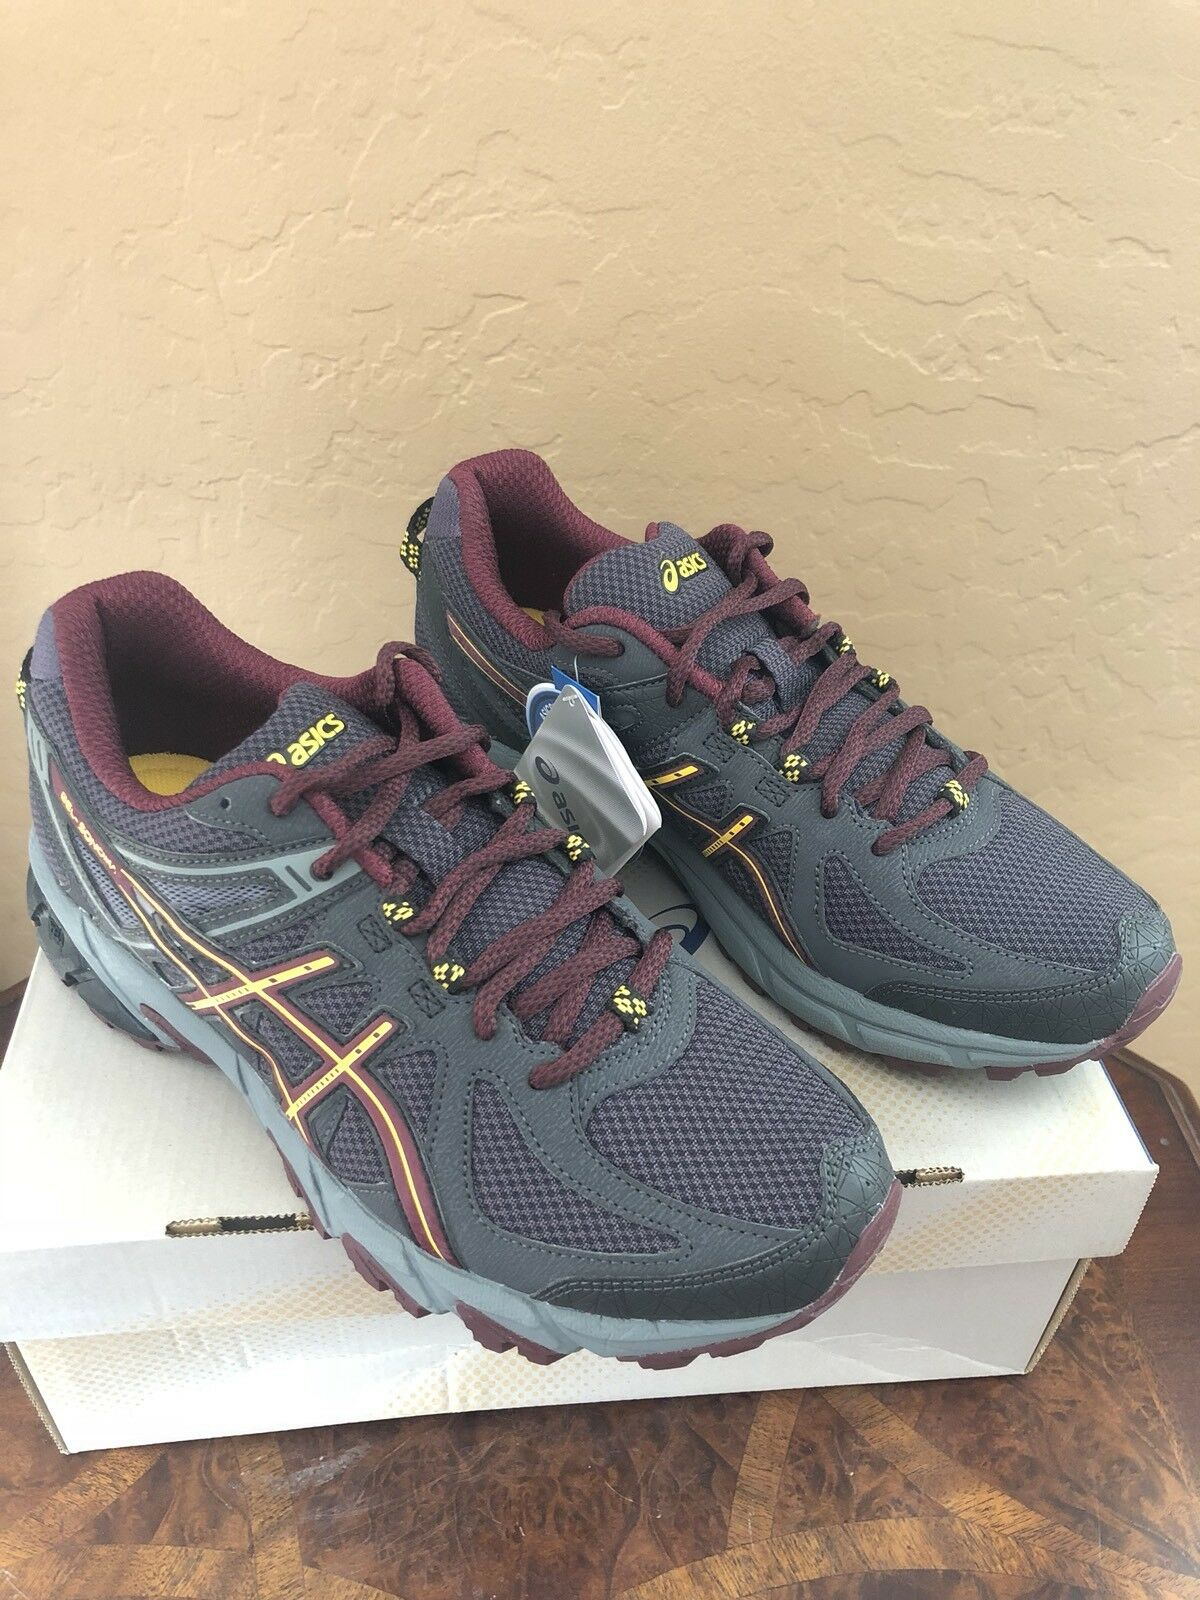 NWT ASICS MENS 7 1/2 YELLOW GEL-SONOMA BLACK/ROYAL BURGUNDY/SPECTRA YELLOW 1/2 T4F2N 9029 08d8a8